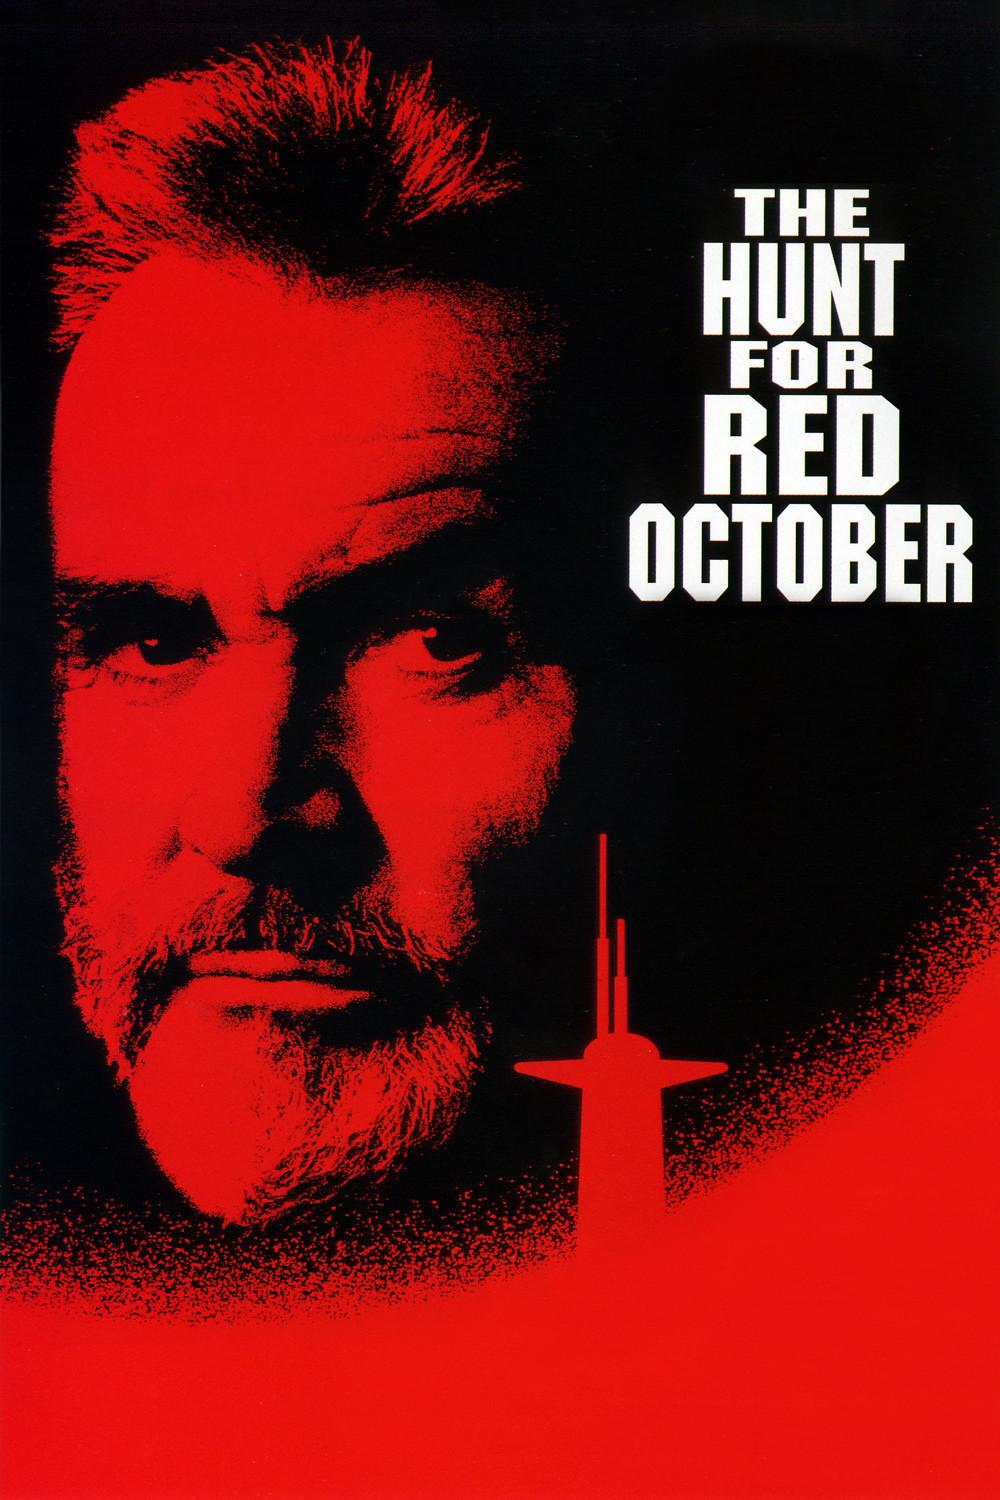 Red-October-poster